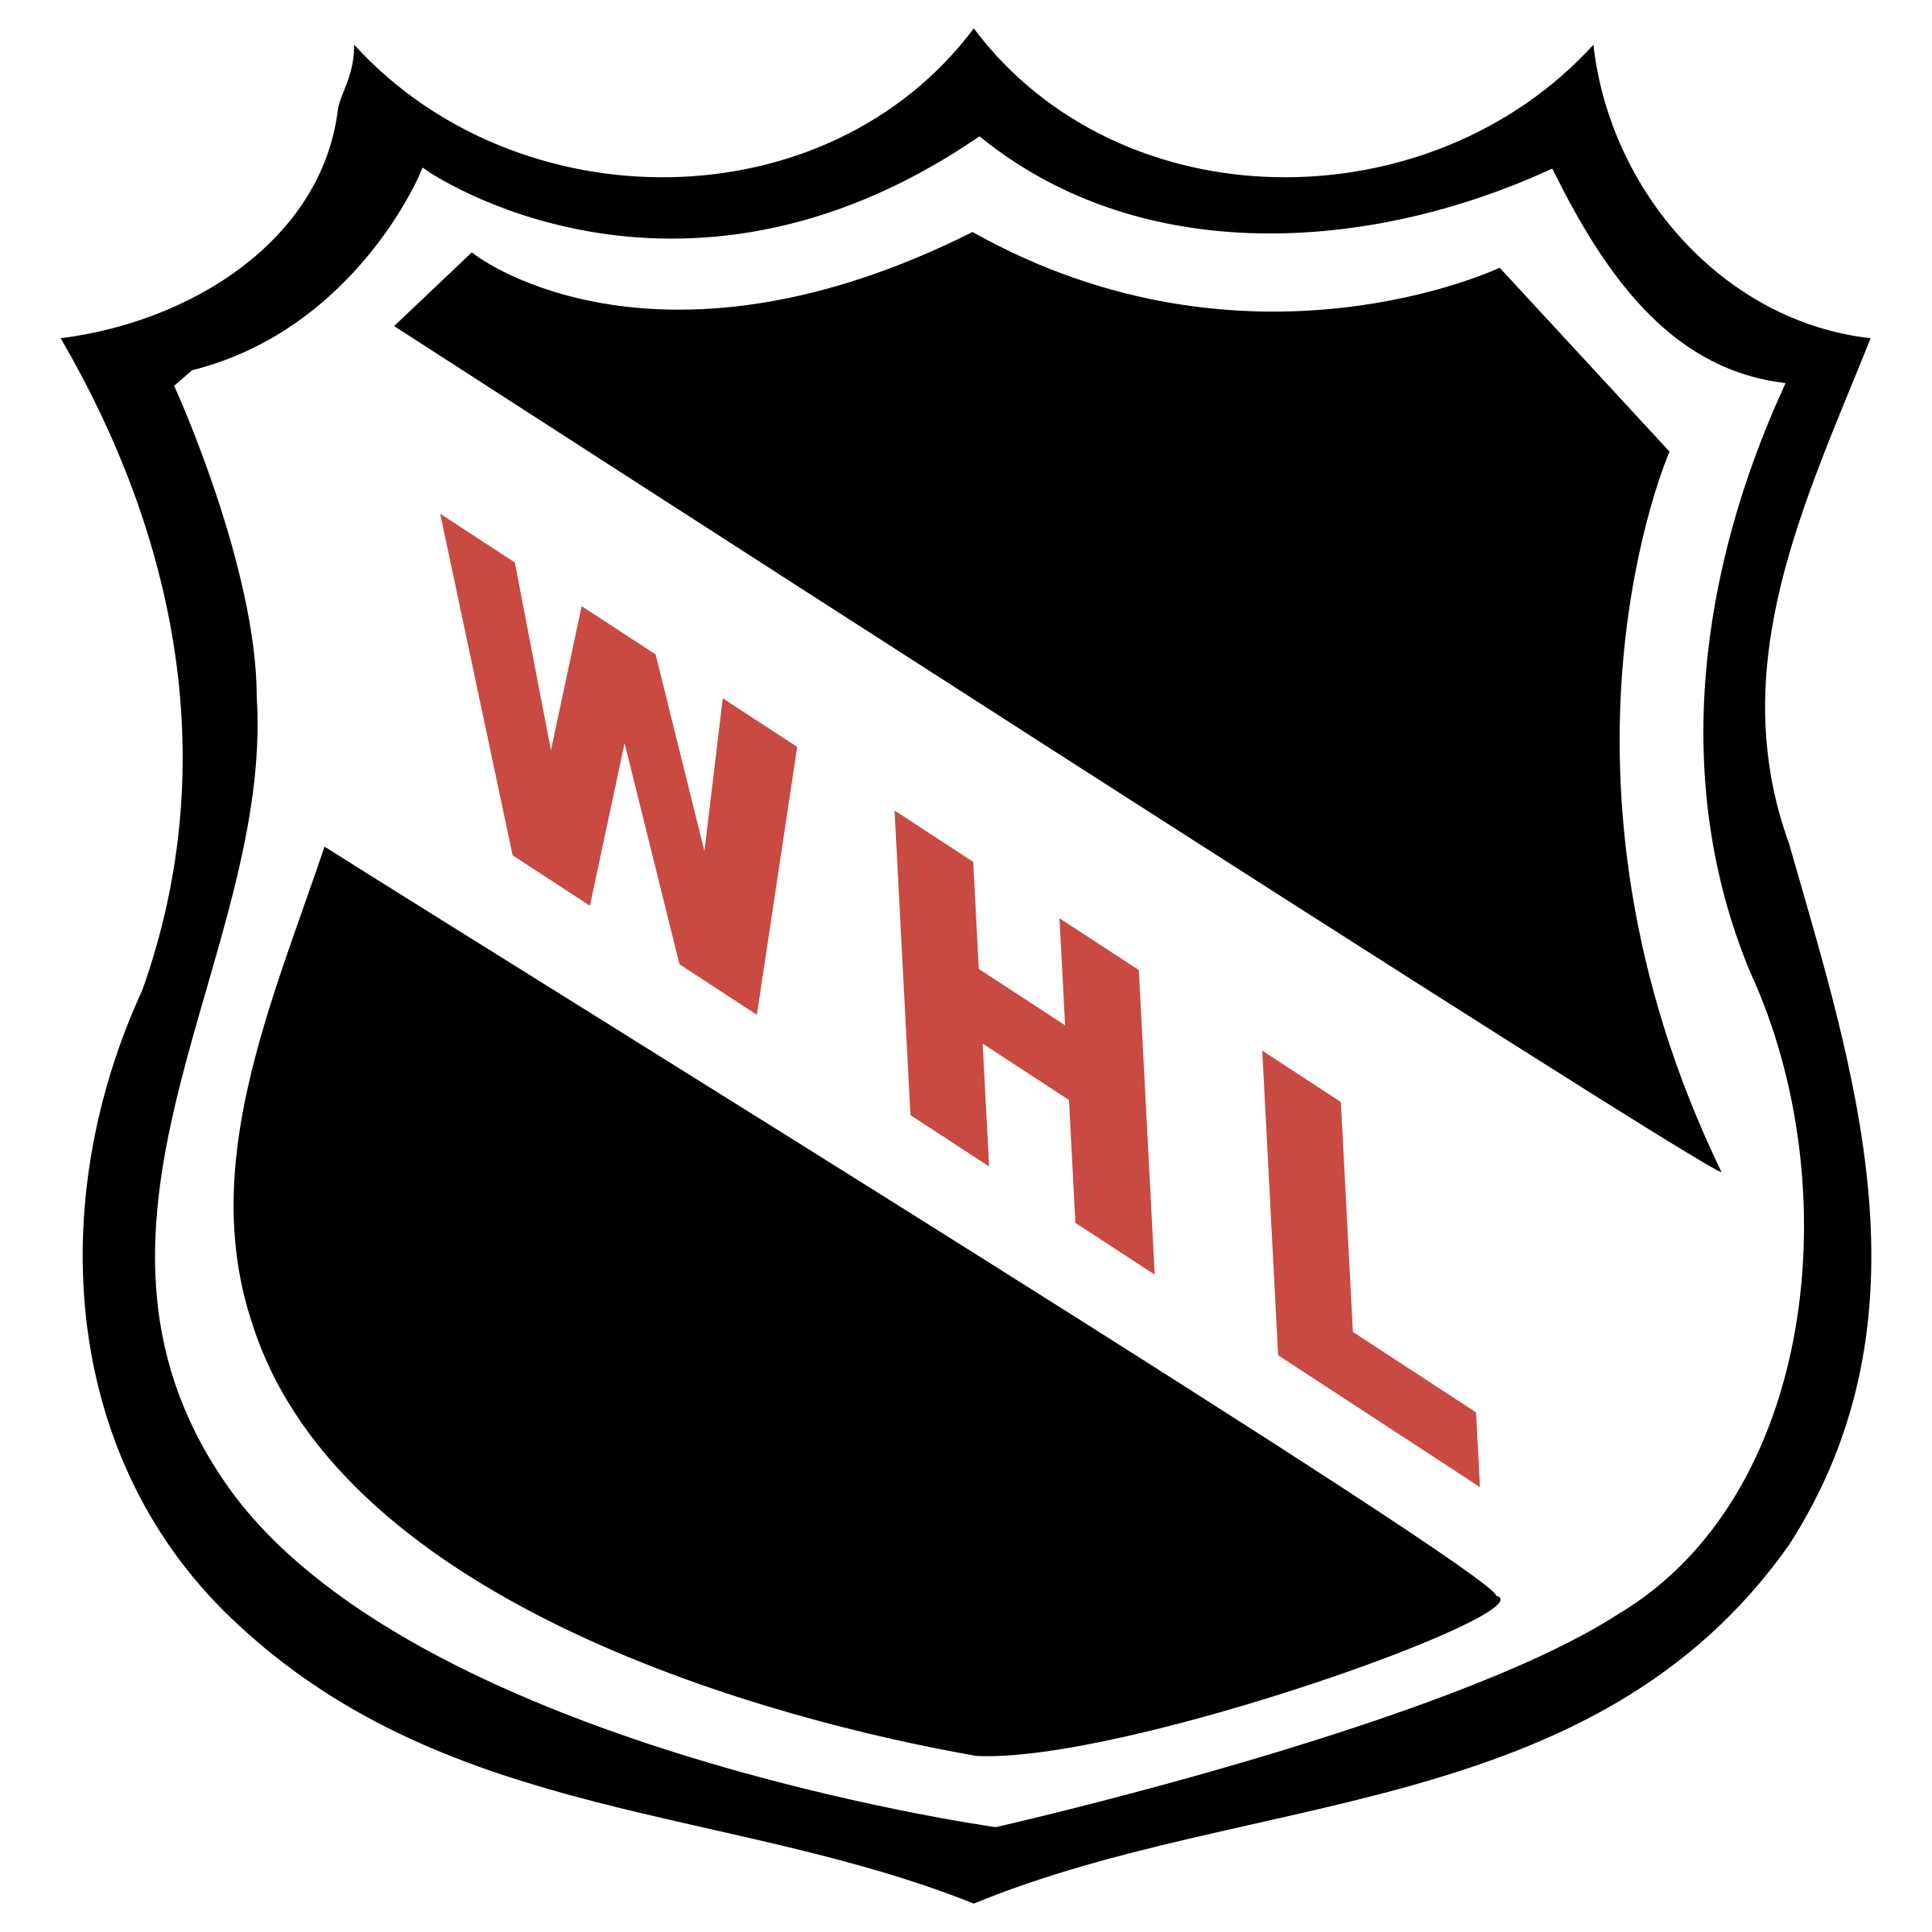 WHL Logo PNG Transparent & SVG Vector.